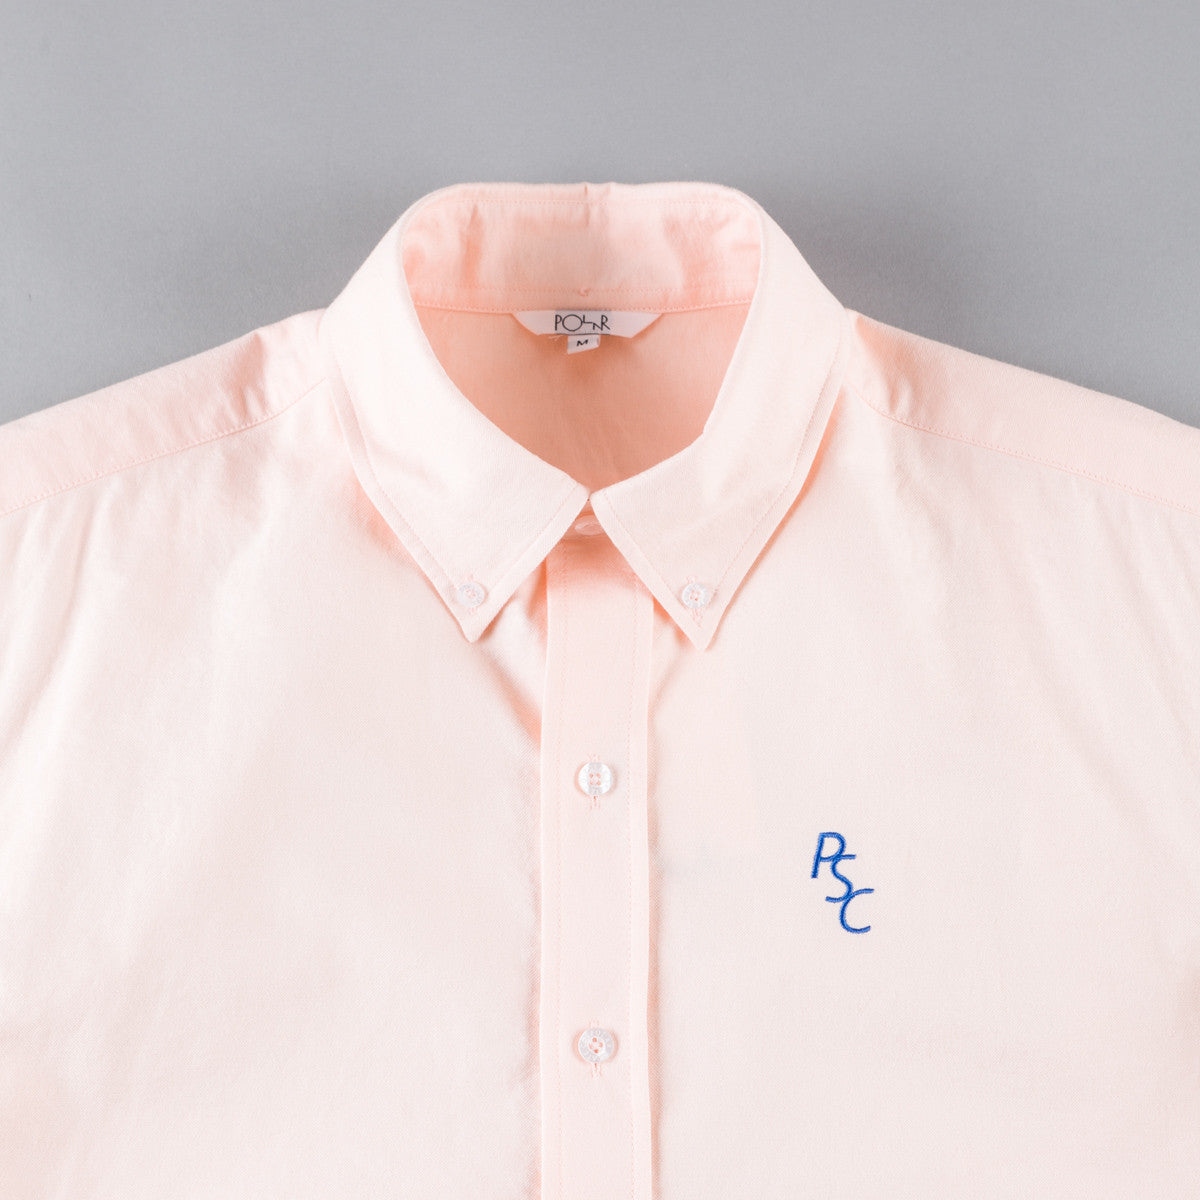 Polar PSC Short Sleeve Shirt - Peach